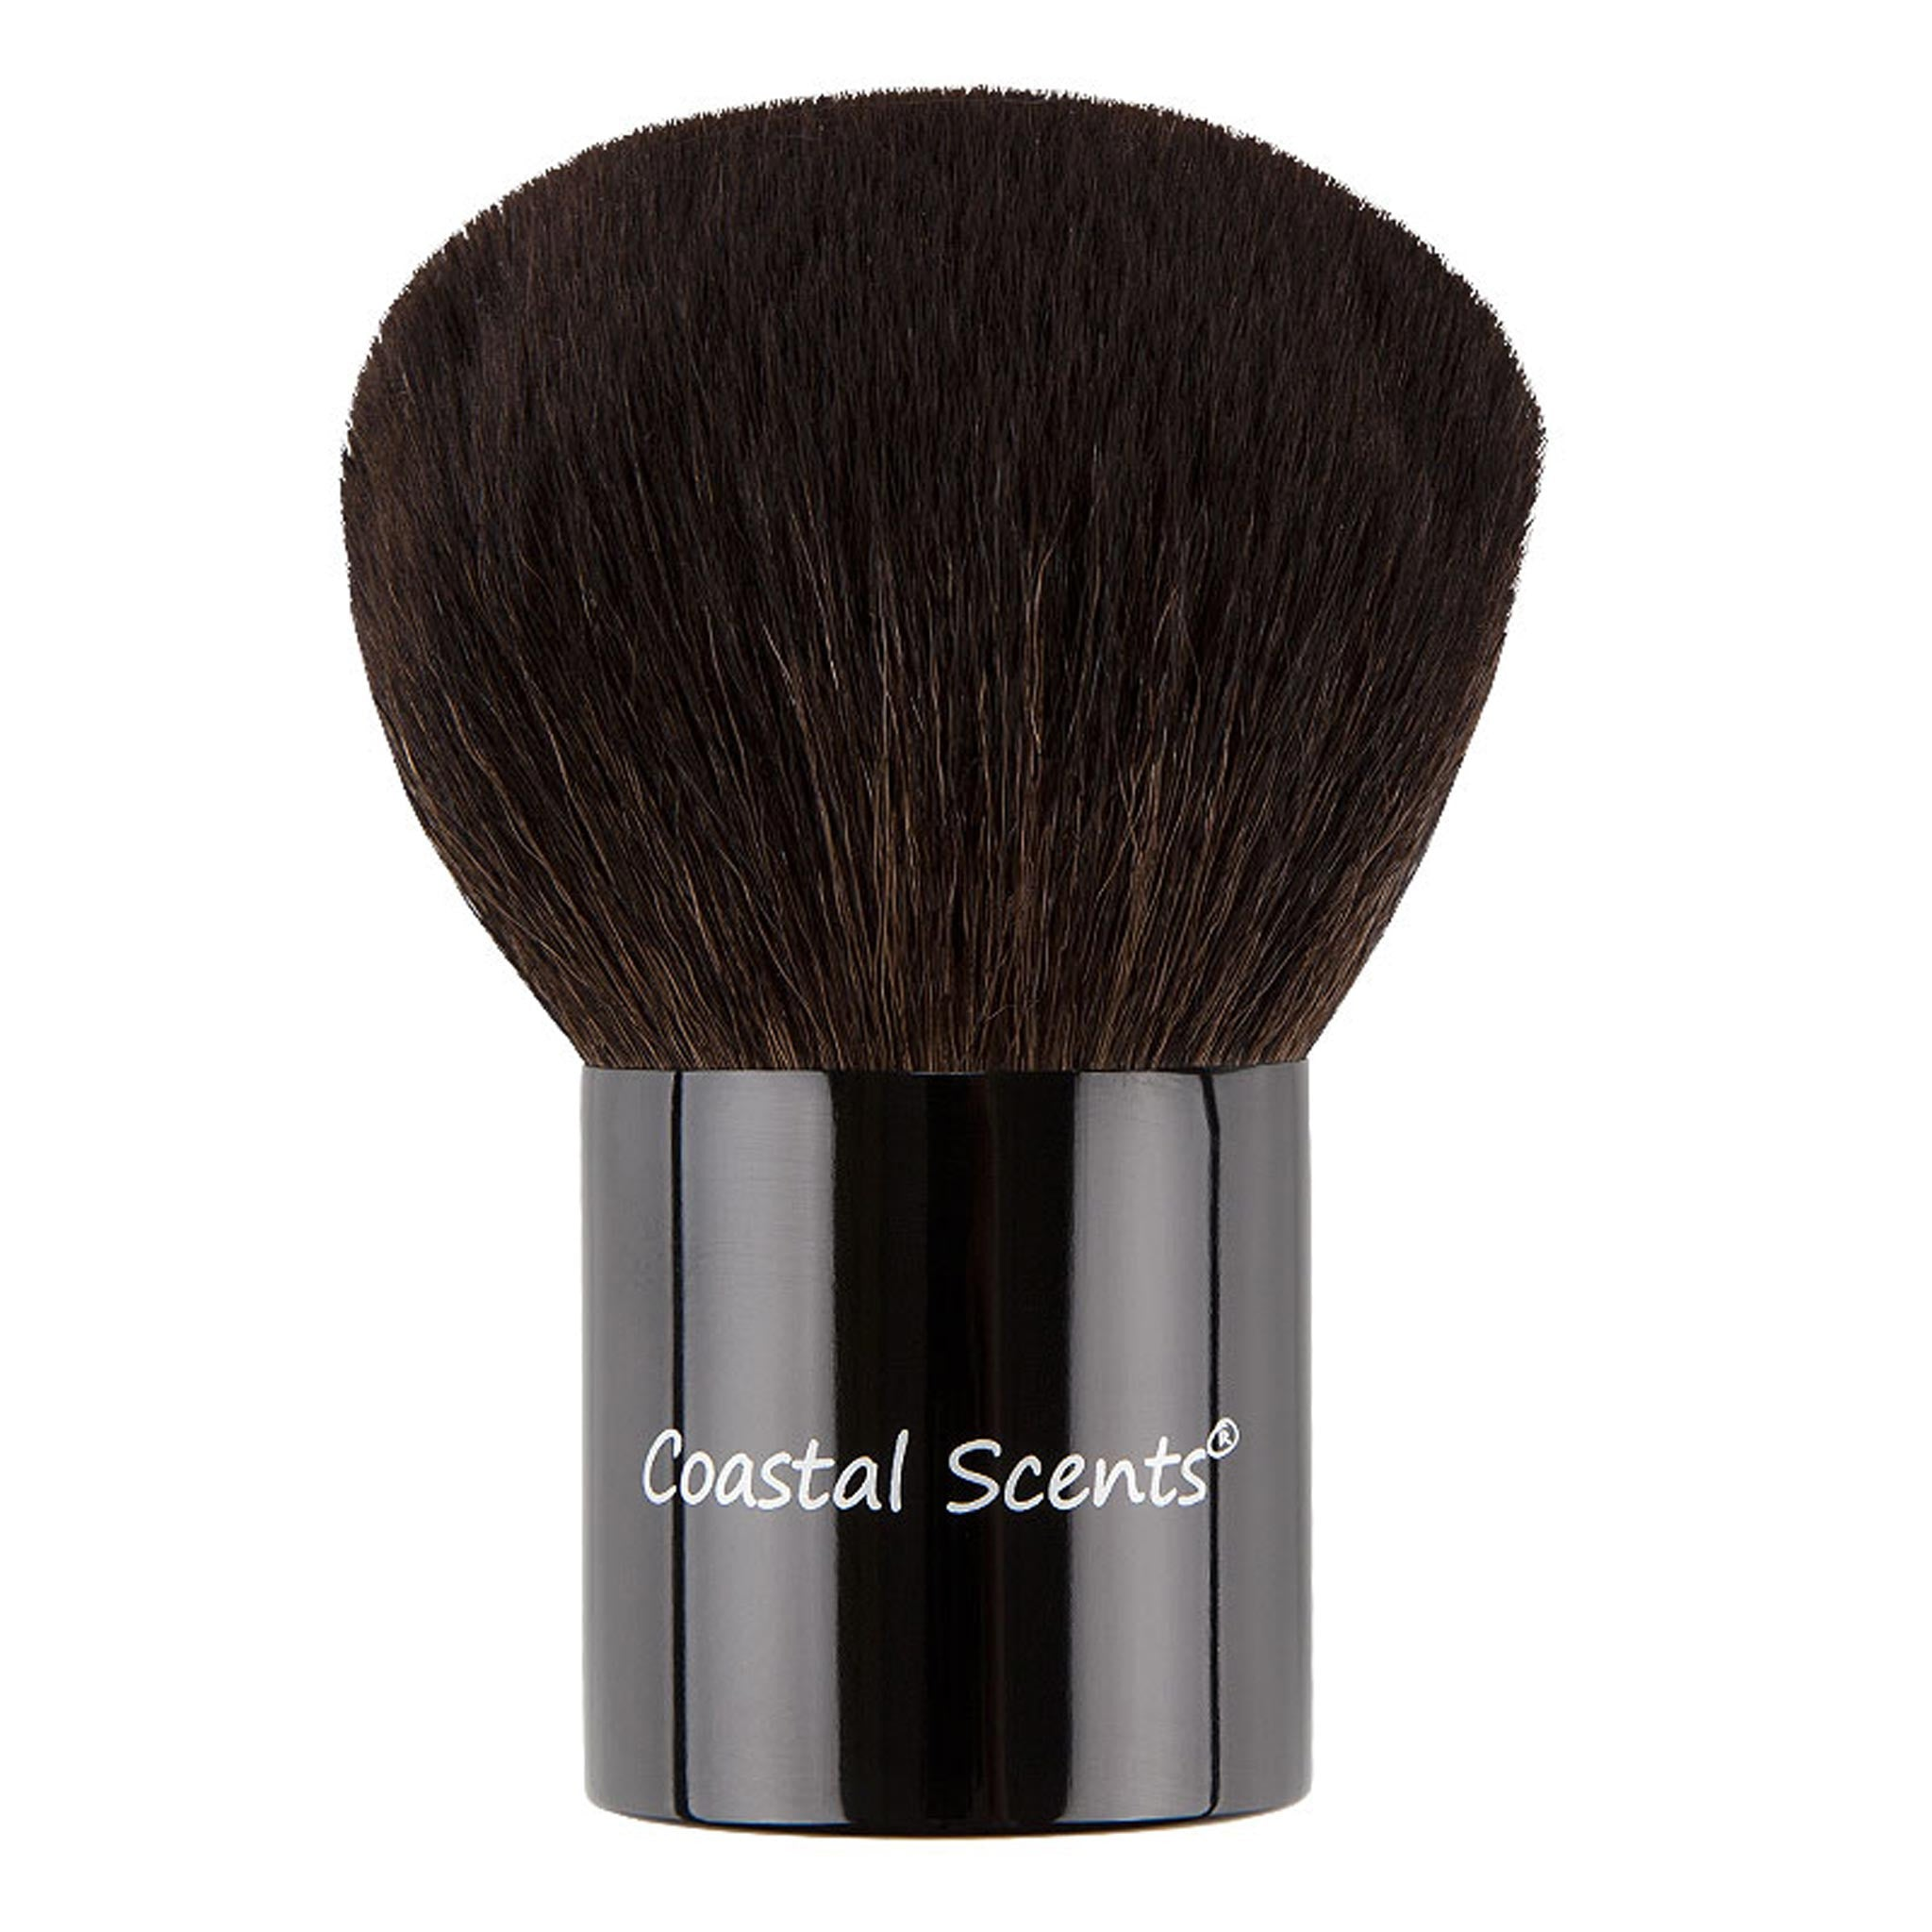 Coastal Scents coupon: Classic SuperBuki Brush Natural